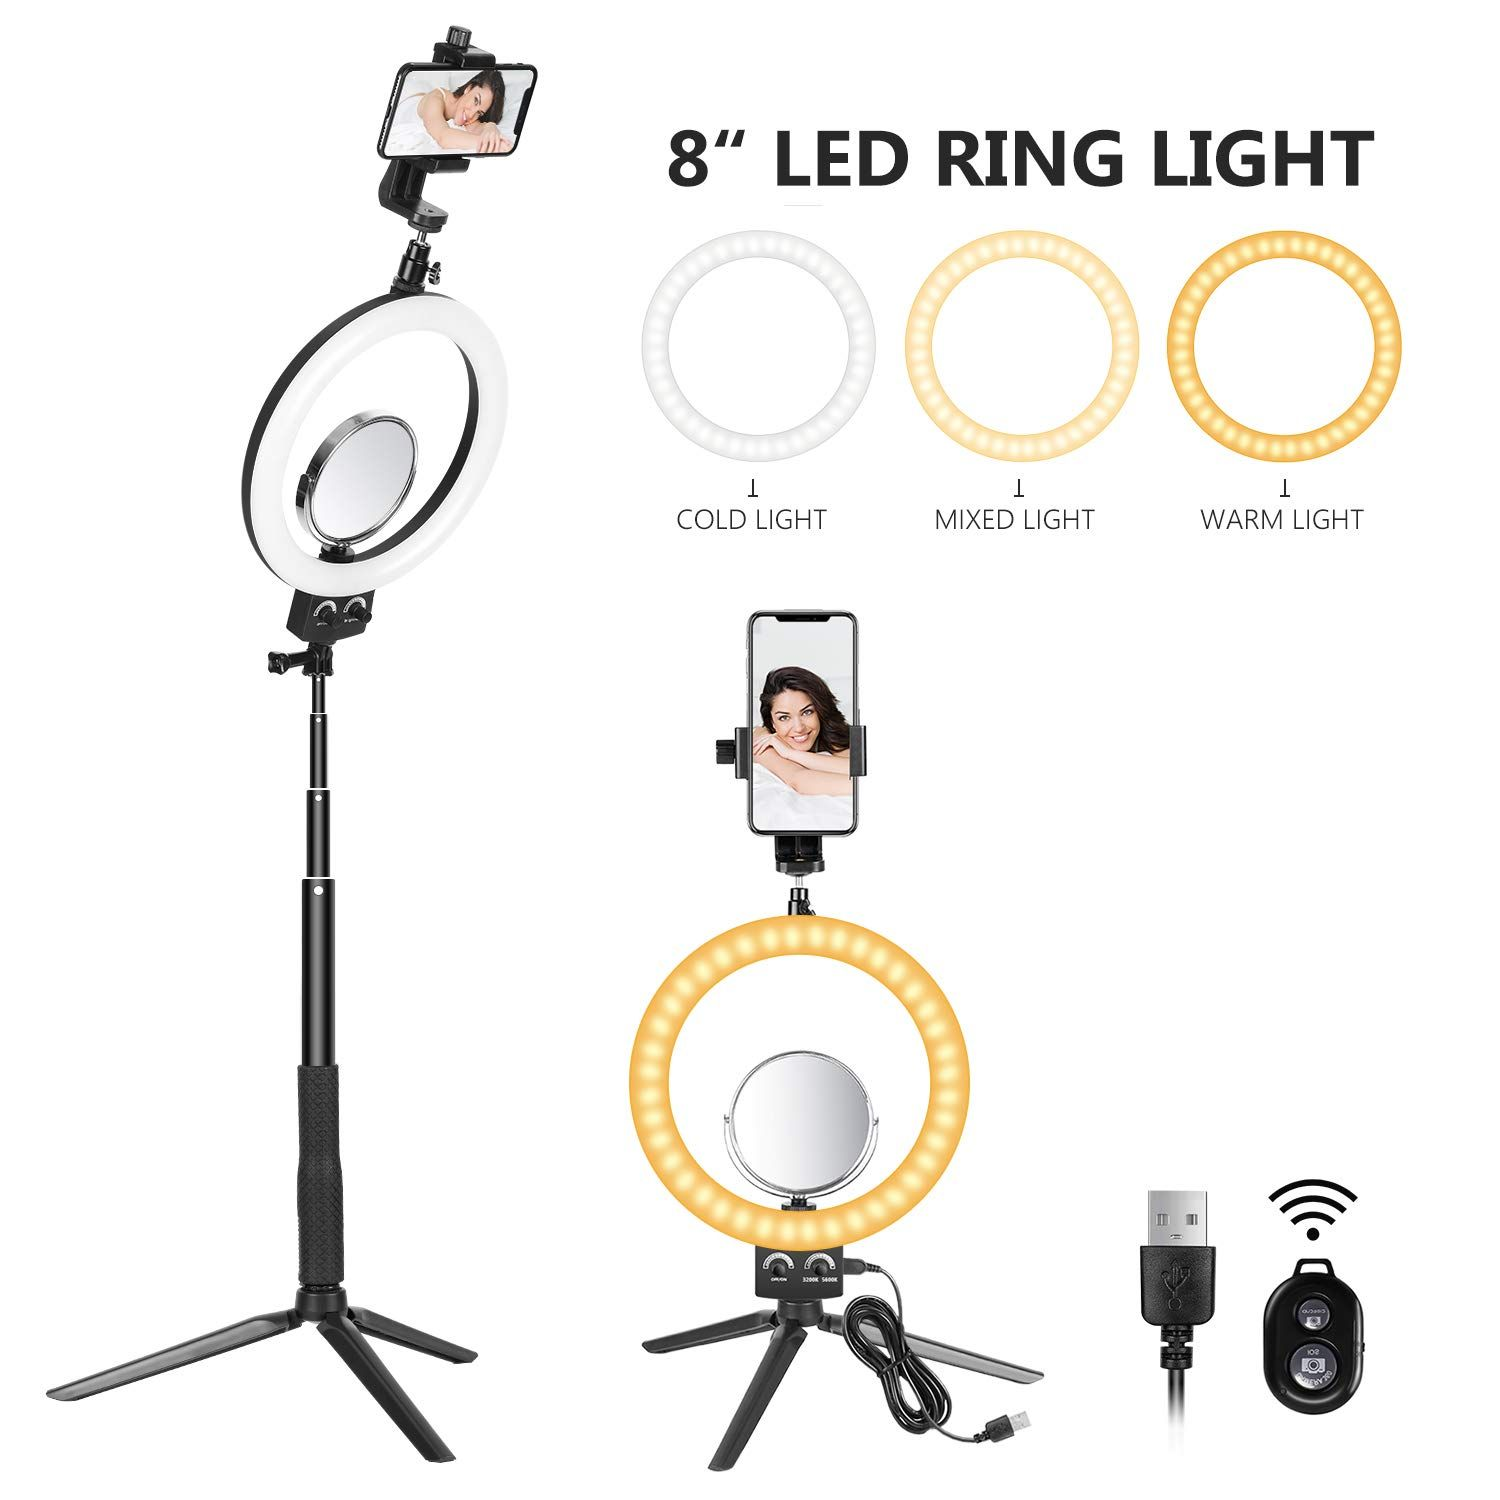 4 Colors Red, Yellow, White, Blue Neewer Photography Video Light Diffuser Kit for Neewer 14 inches 50W LED Ring Light and 36W Ring Light Flash Light